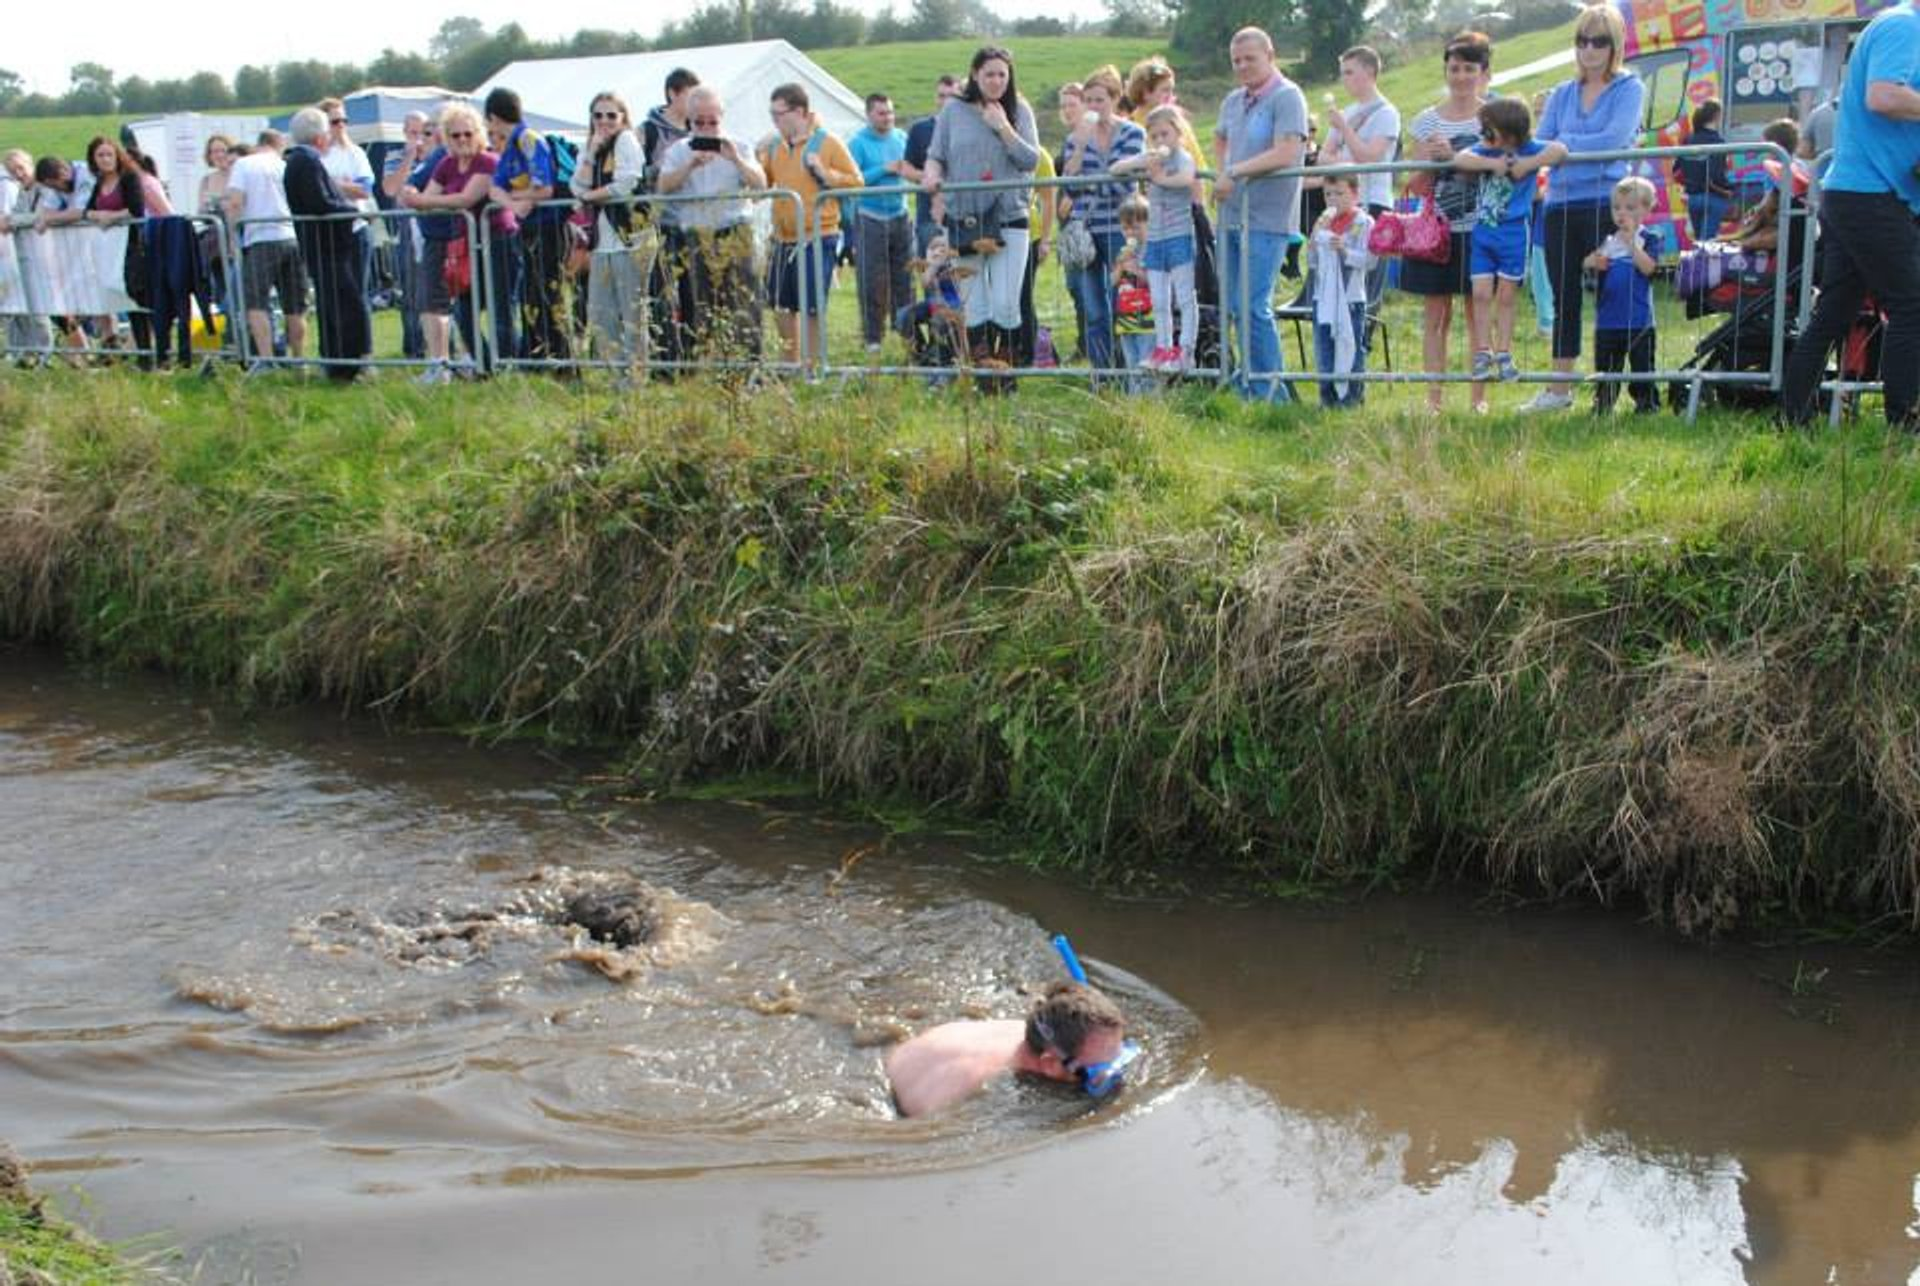 Irish Bog Snorkelling Championship in Ireland - Best Season 2020